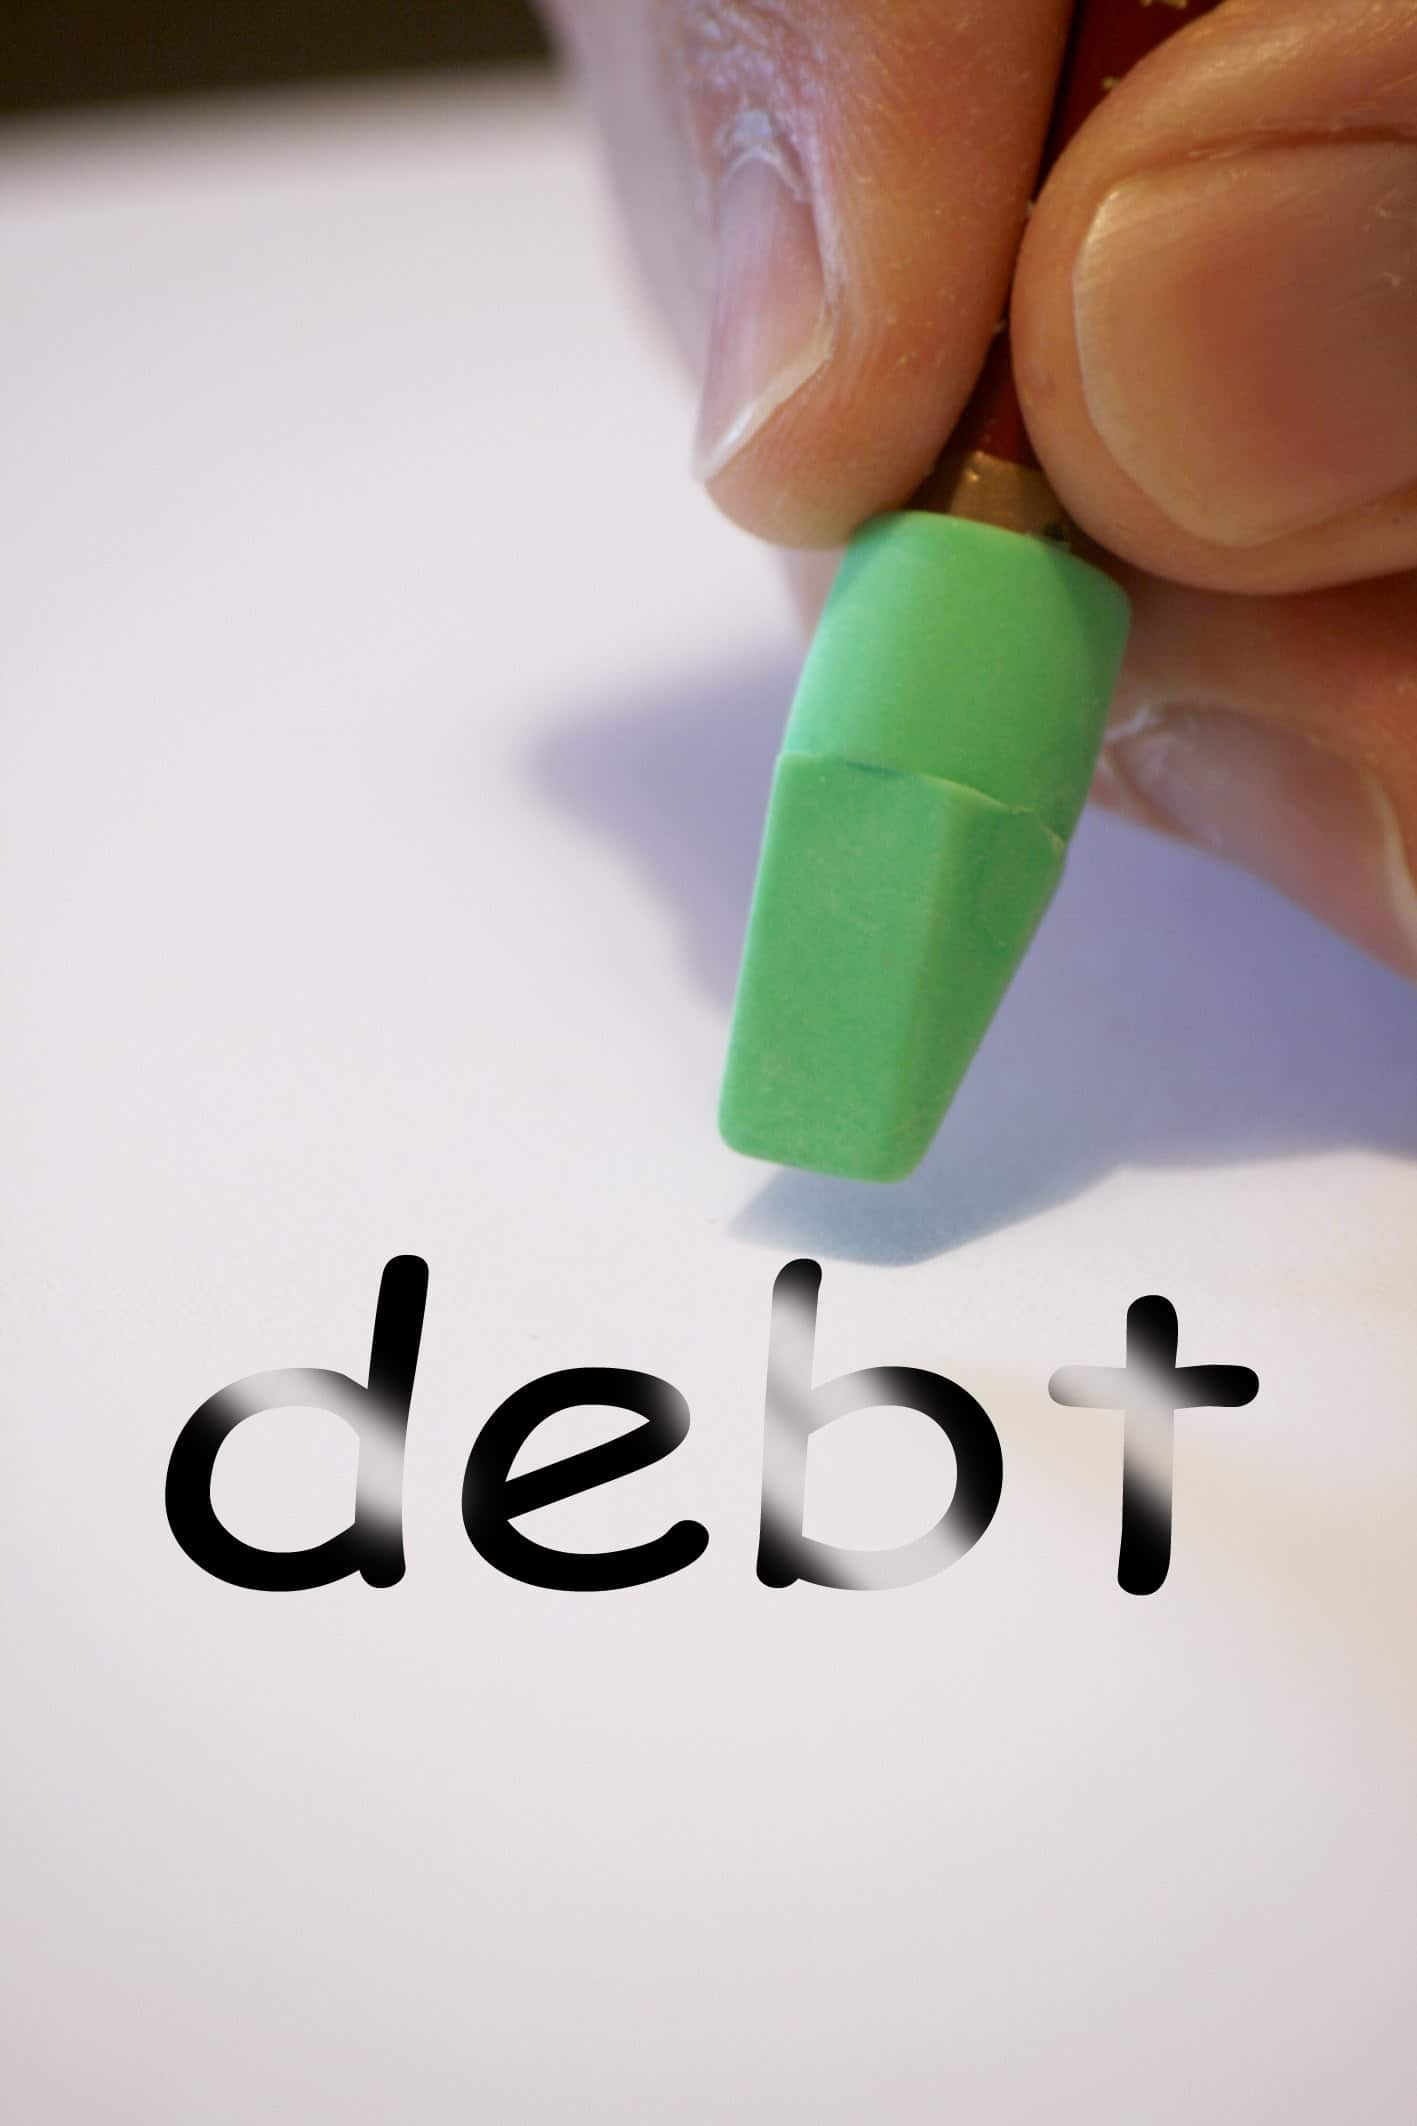 Debt being erased under chapter 11 or chapter 13 bankruptcy